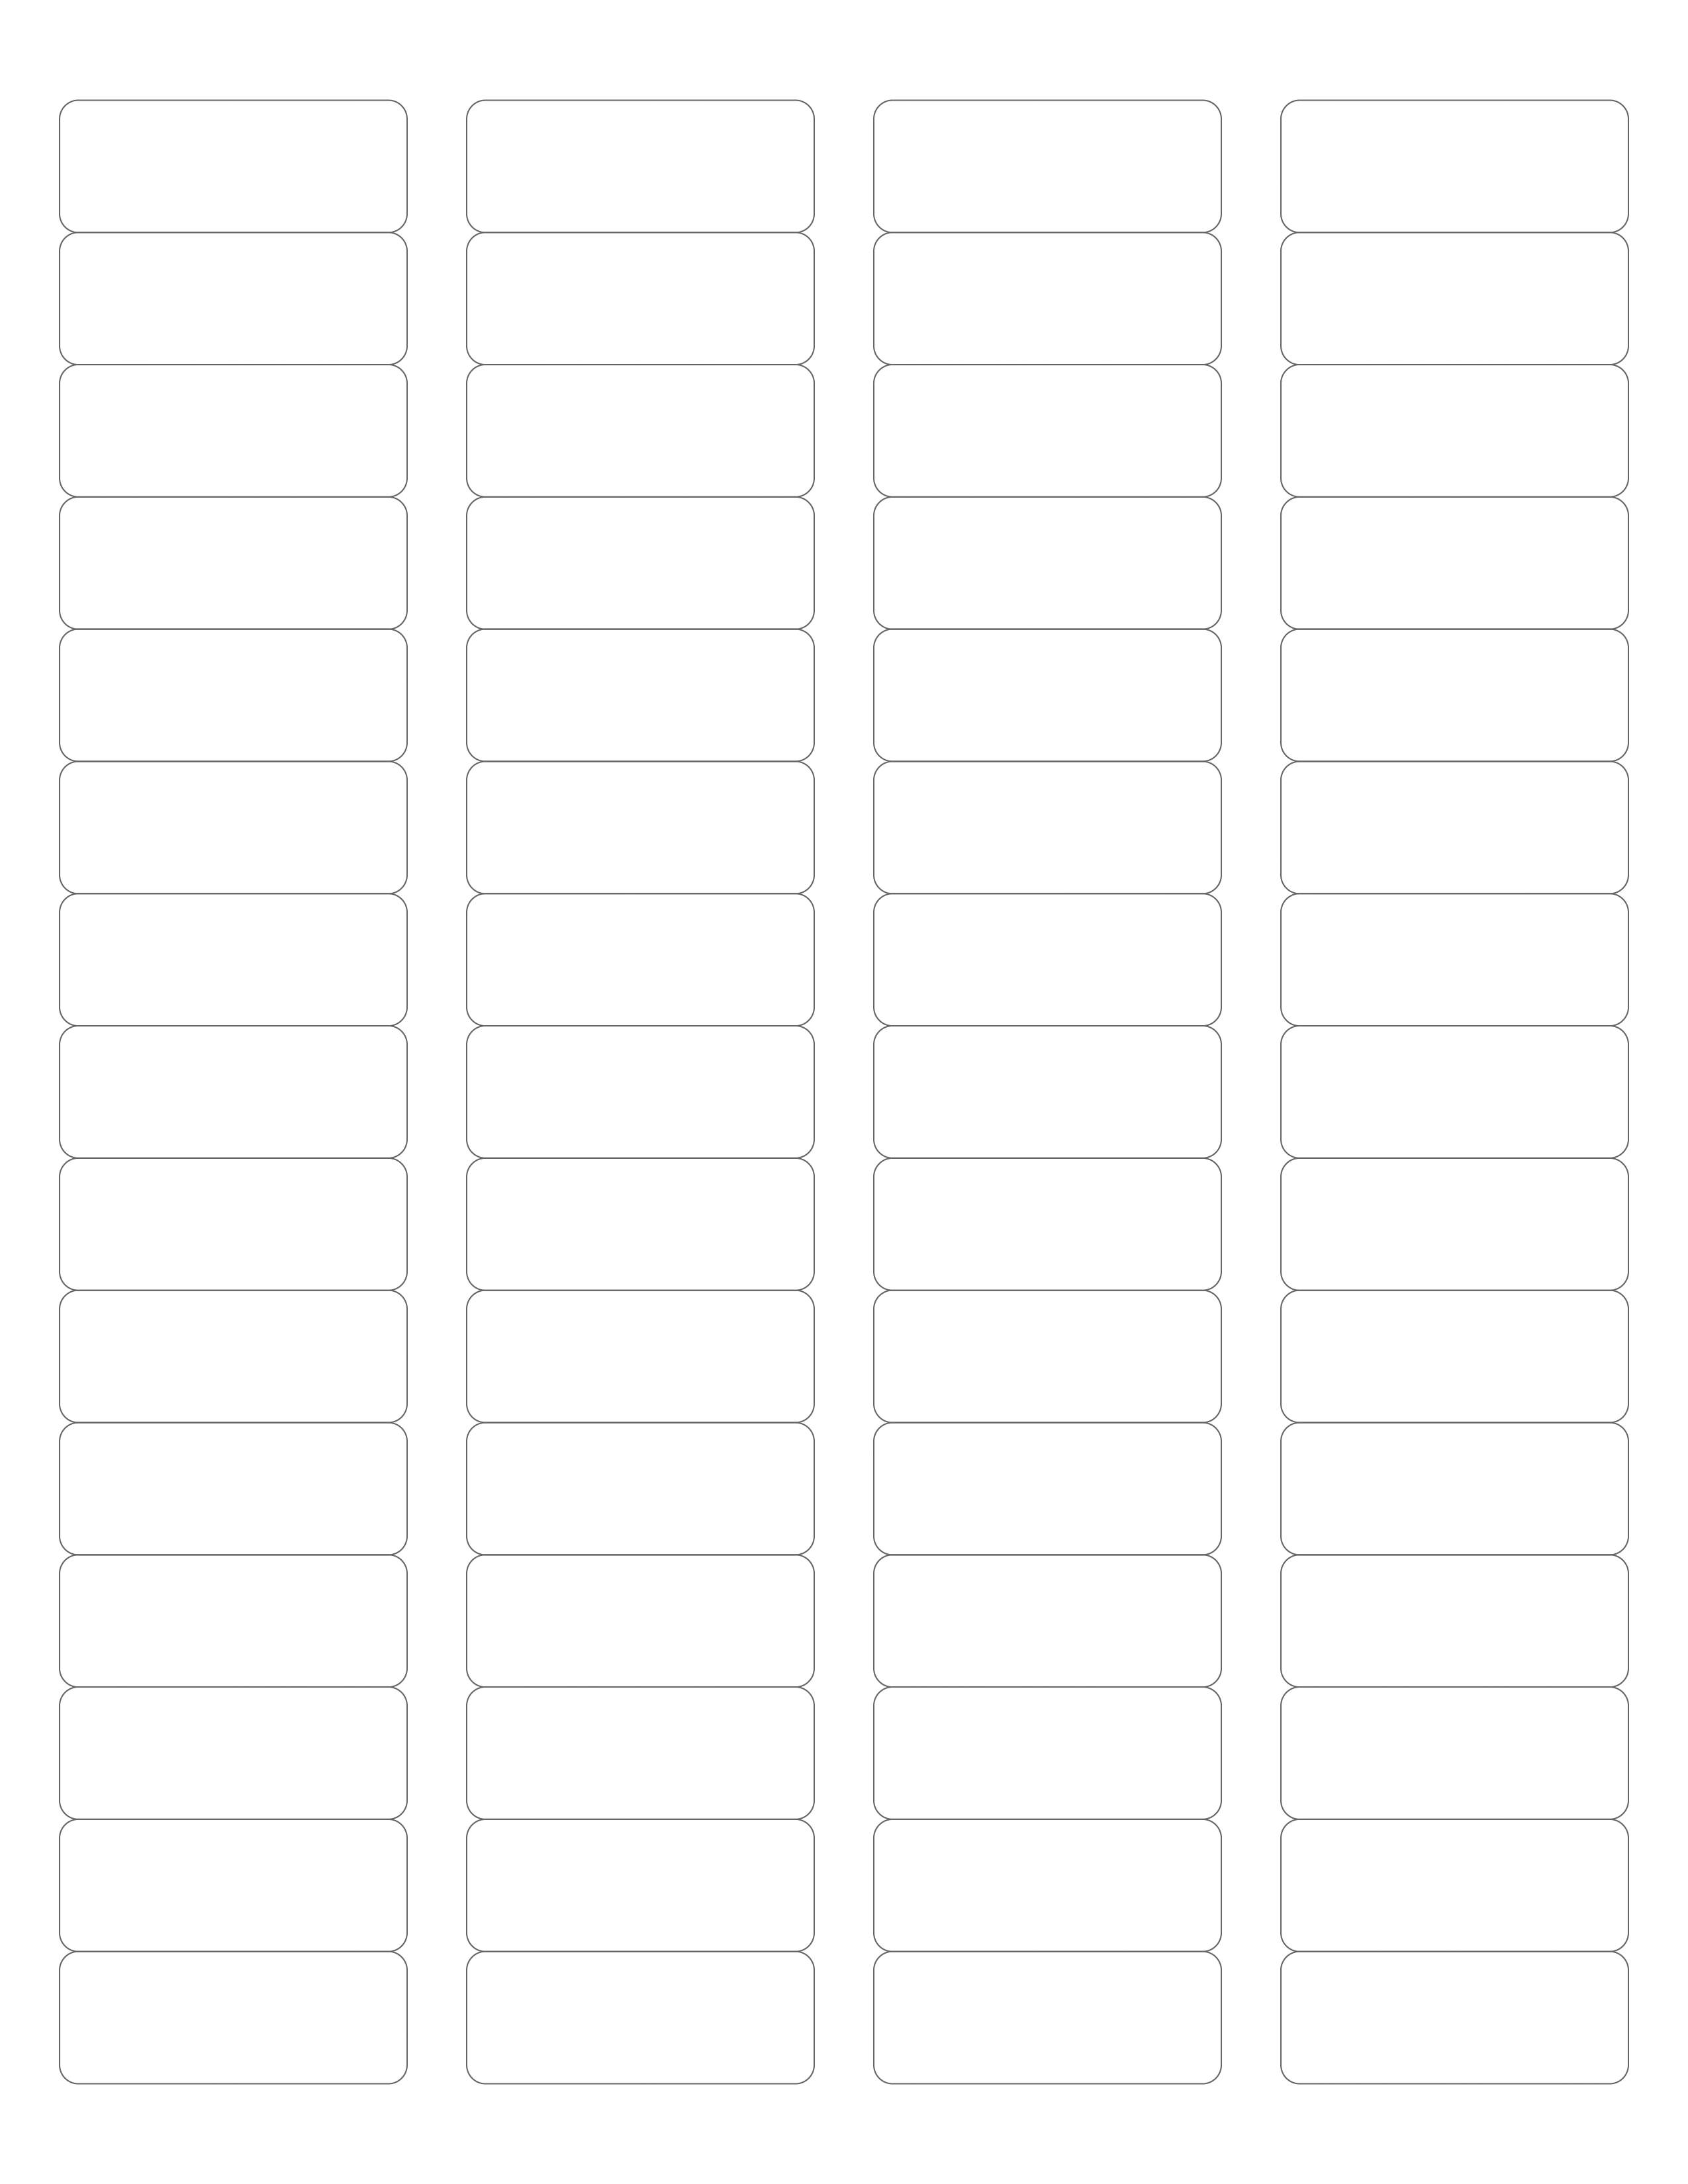 MR22121 – 221/221″ x 21-221/21″ – US Letter Sheet – 21 Rectangle Labels – MR Pertaining To Free Label Templates For Word